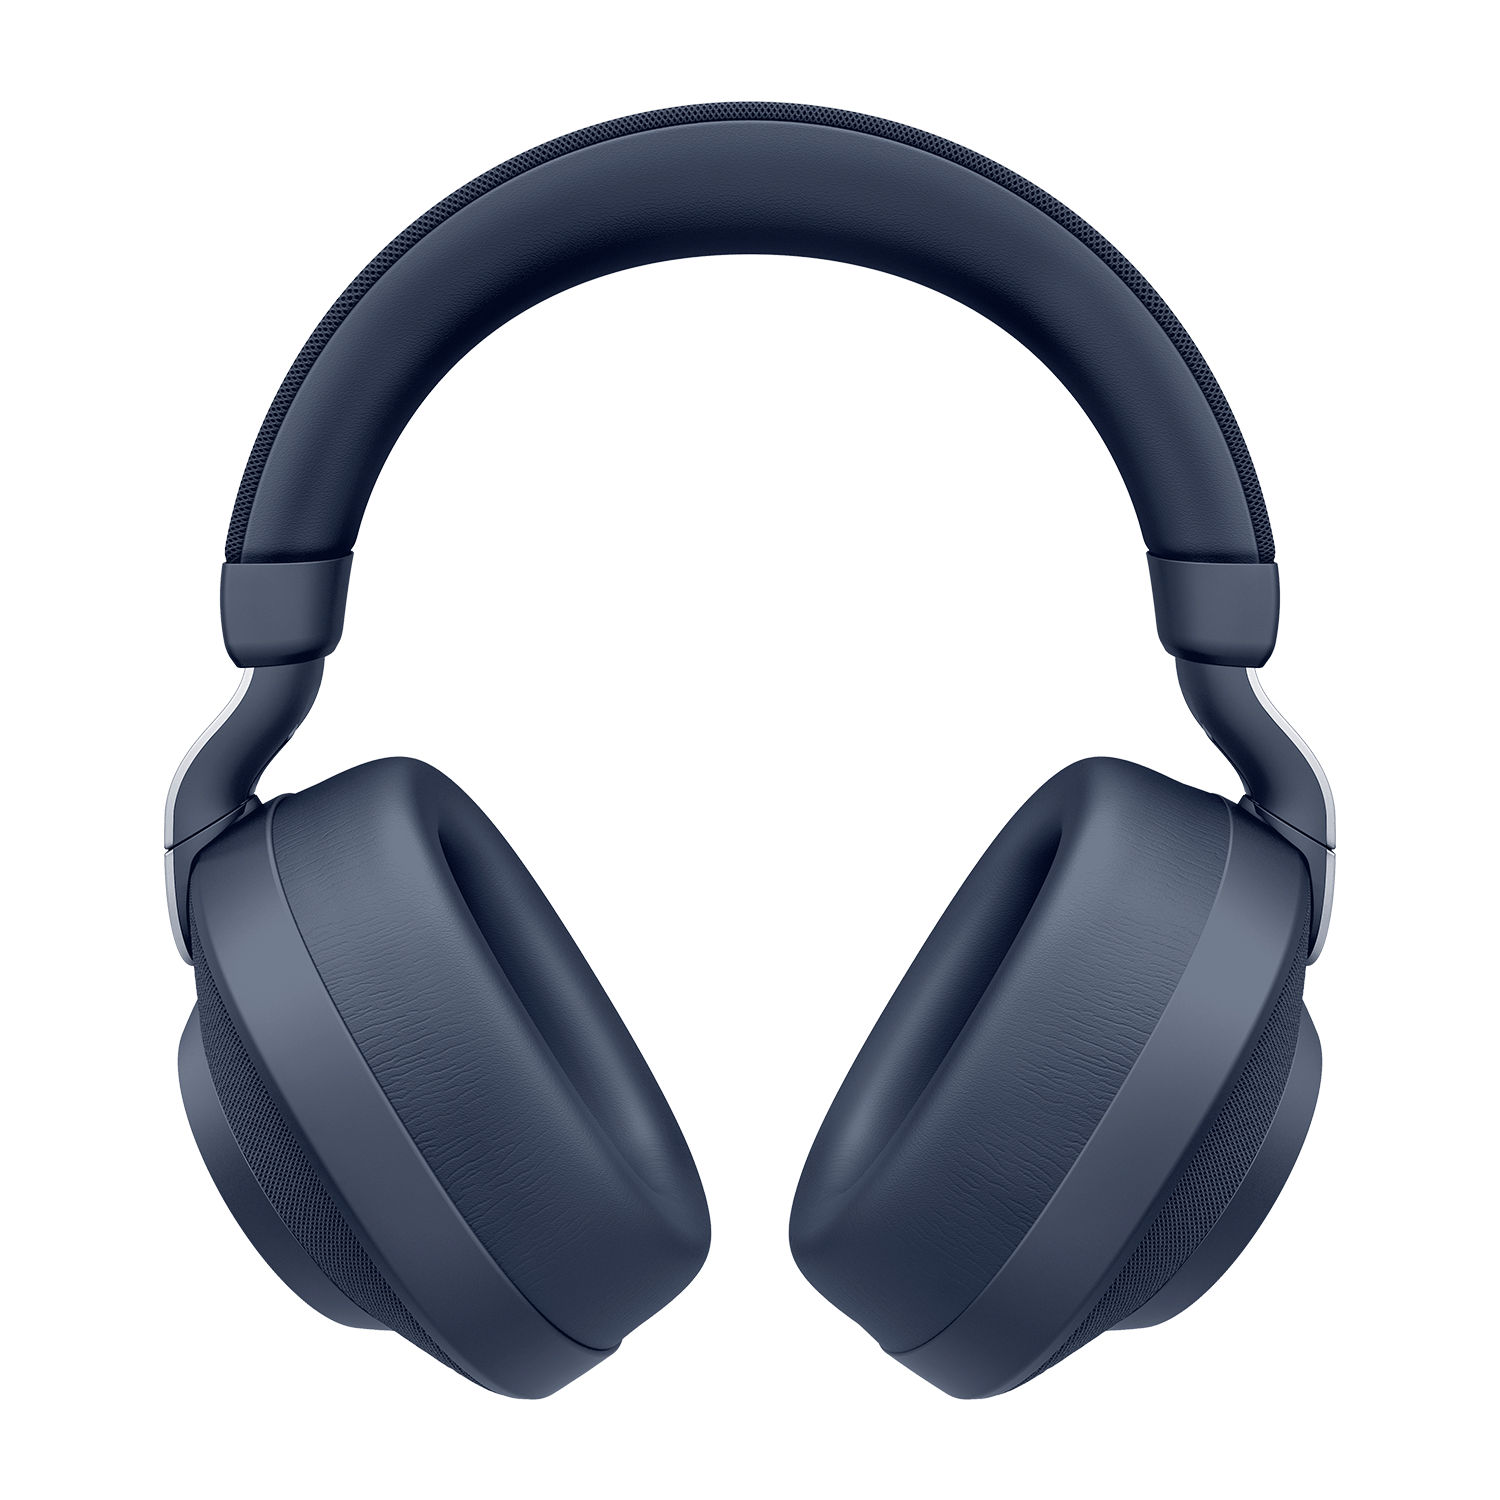 Jabra Elite 85h Navy Wireless Noise-Cancelling Headphones